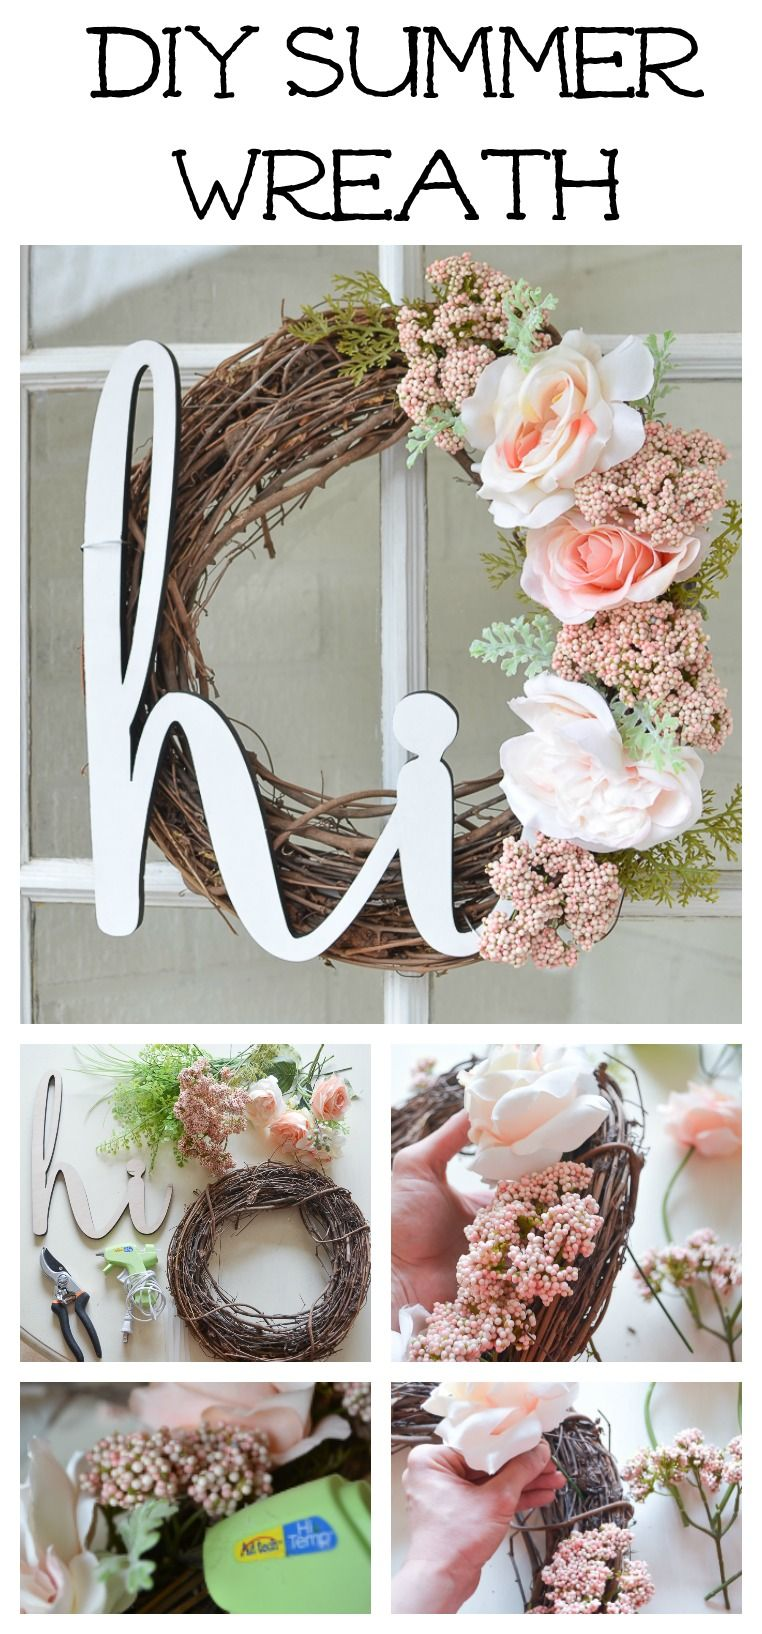 Diy Summer Wreath For Your Front Porch Summer Wreath Diy Summer Diy Spring Diy